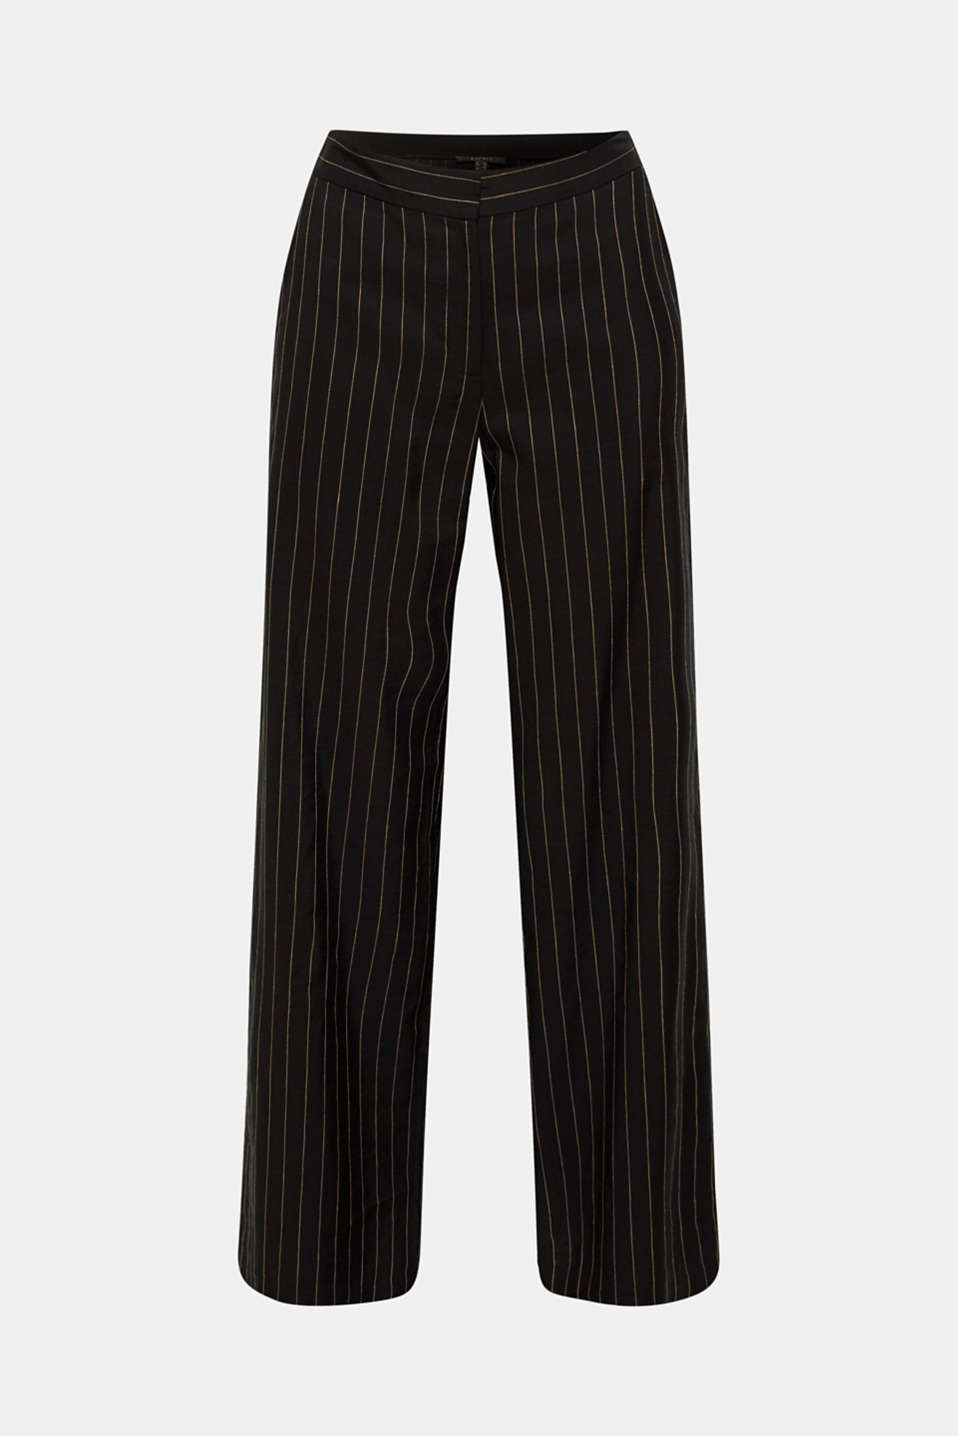 Pinstripe mix + match trousers with a wide leg